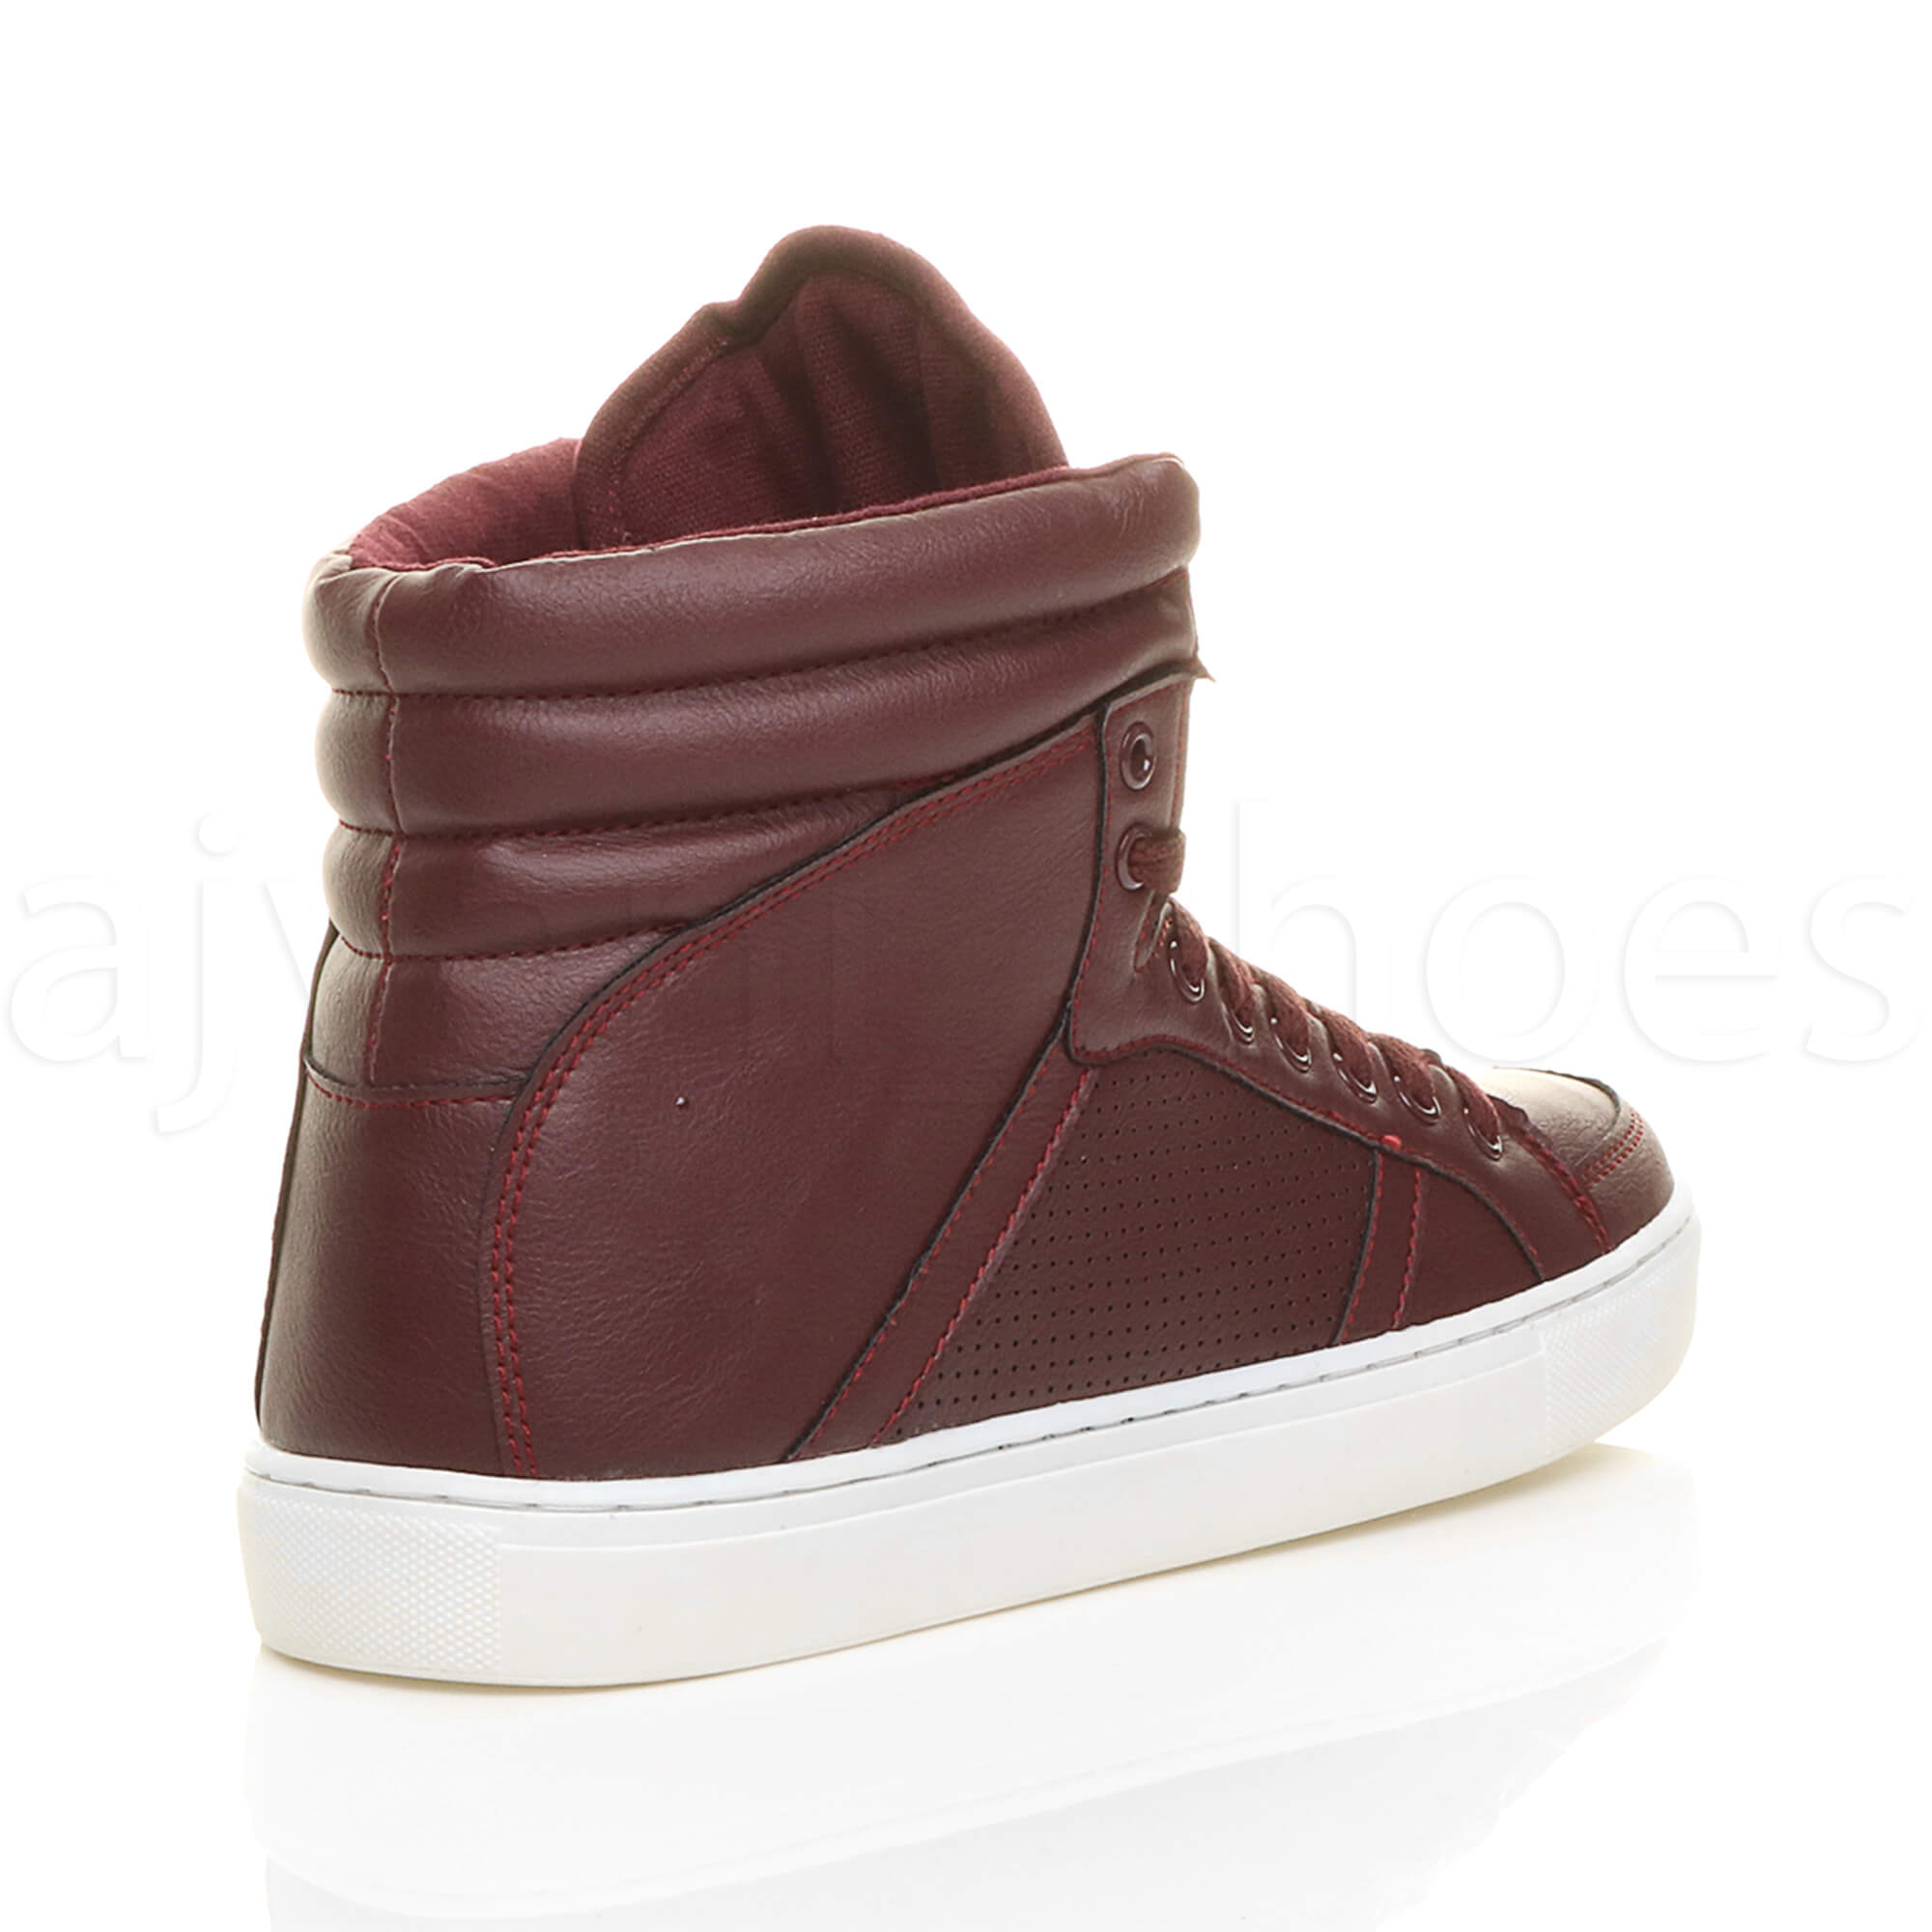 MENS-LACE-UP-CASUAL-FLAT-HI-HIGH-TOP-ANKLE-BOOTS-SHOES-TRAINERS-SNEAKERS-SIZE thumbnail 12